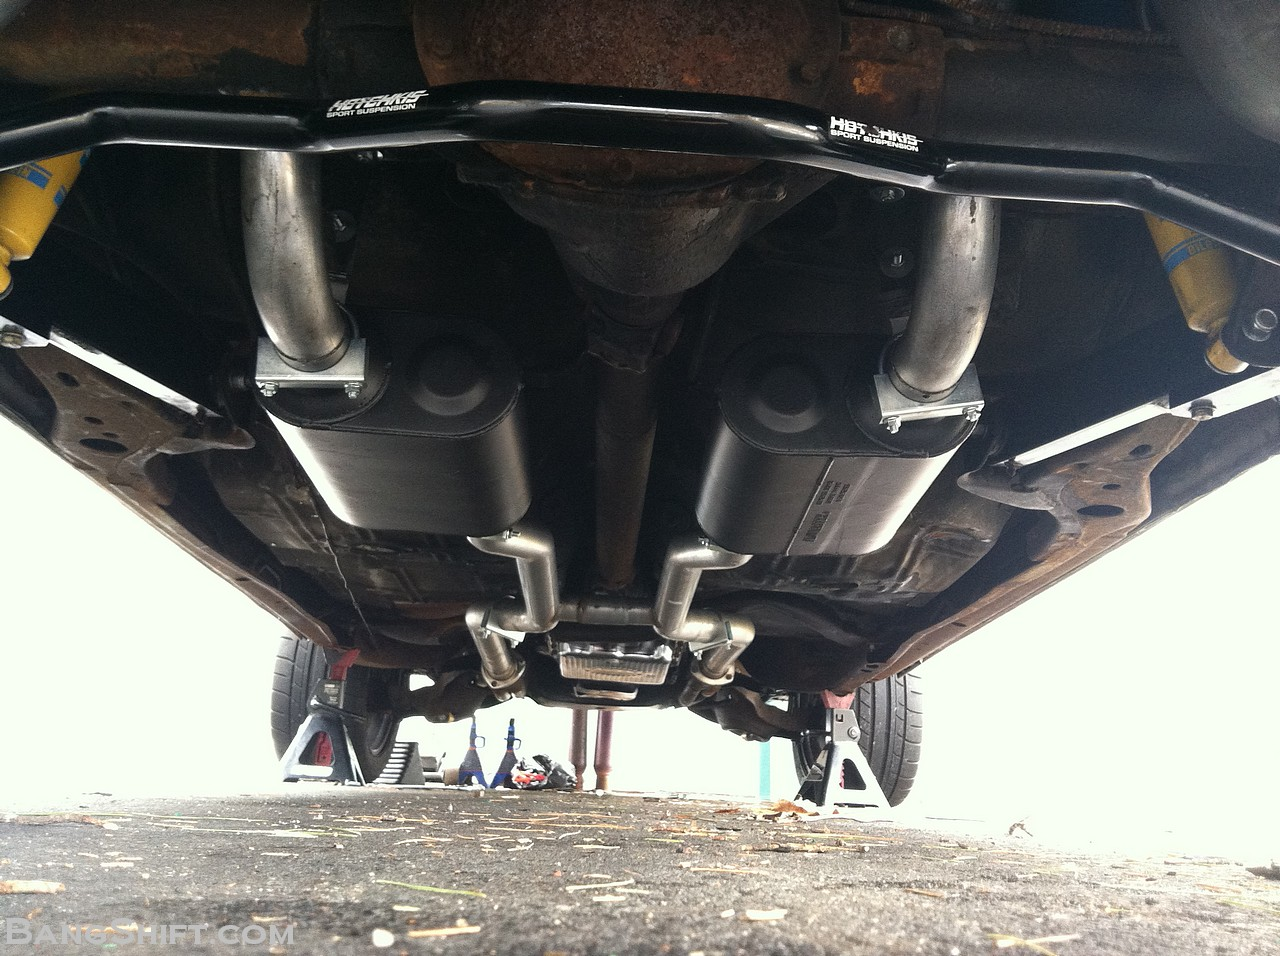 Buford T Justice Update: We Install A First Gen Chevelle Flowmaster Kit On Our 9C1 Caprice!